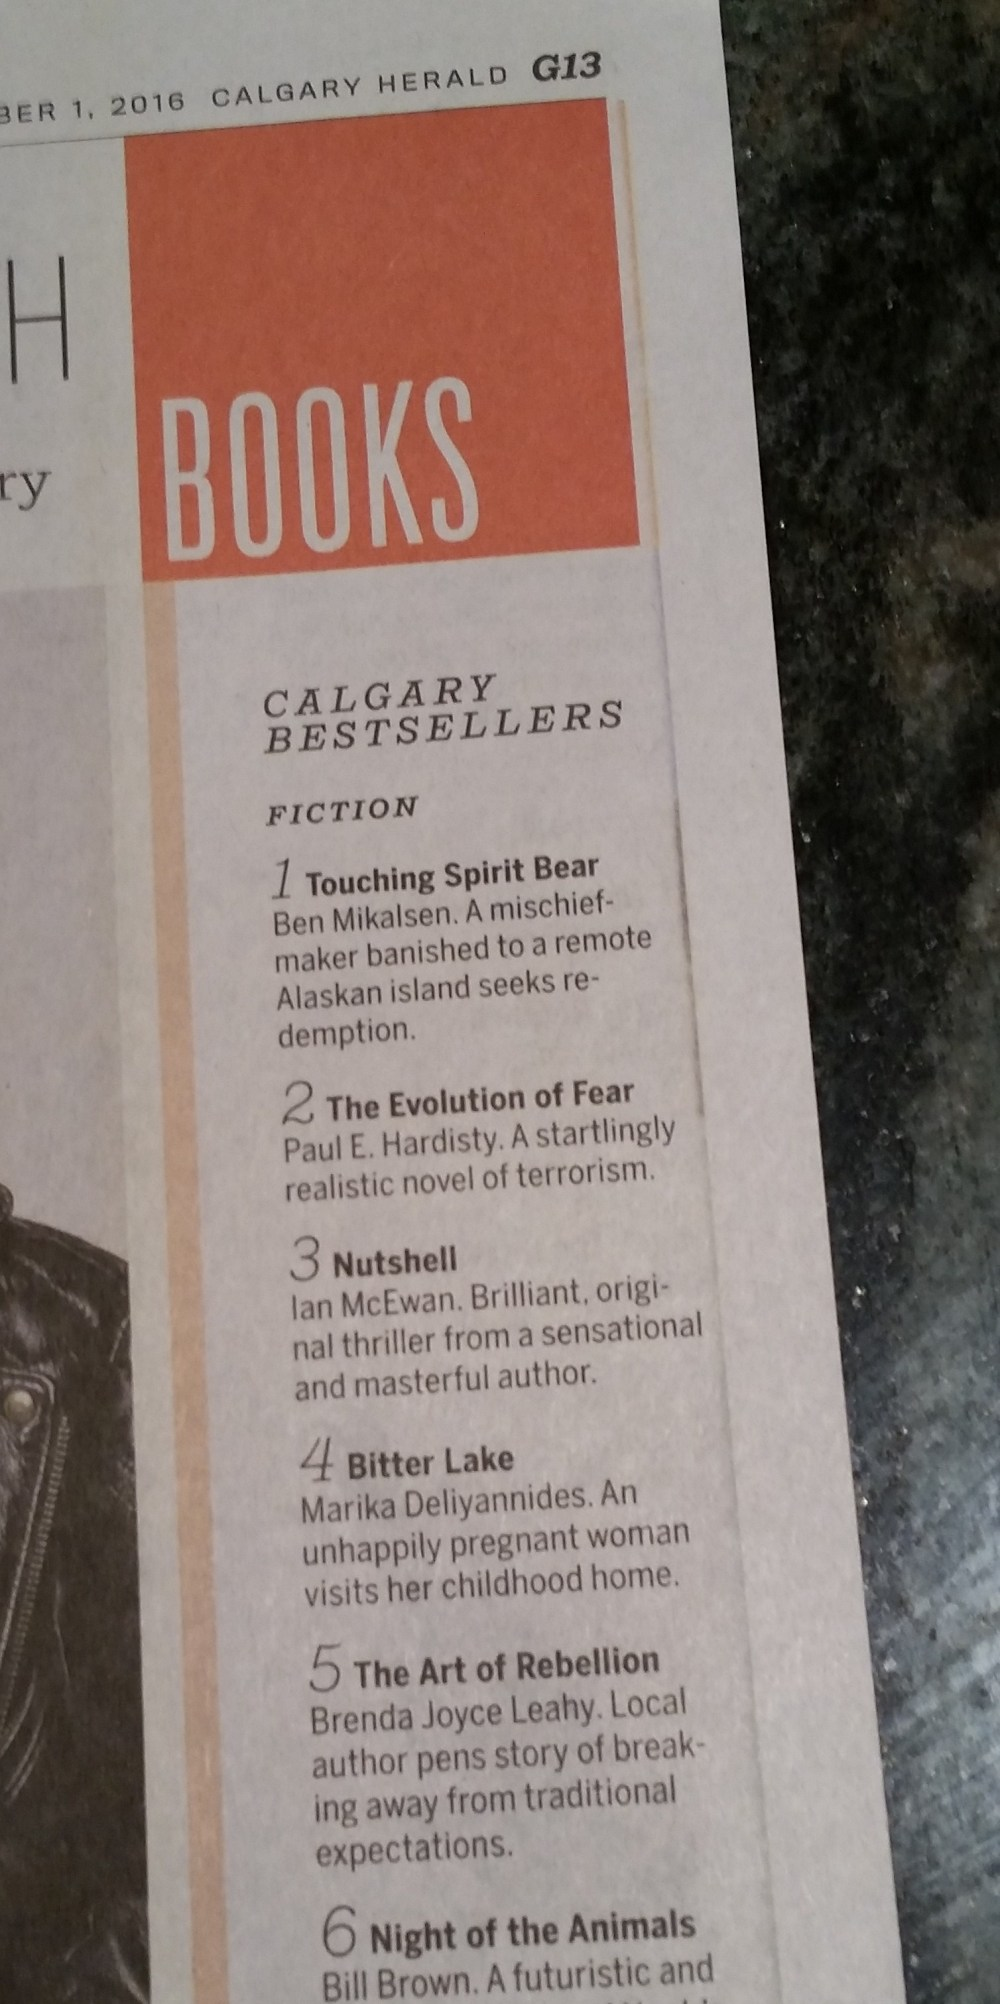 the-art-of-rebellion-calgary-herald-bestseller-oct-1-2016-5